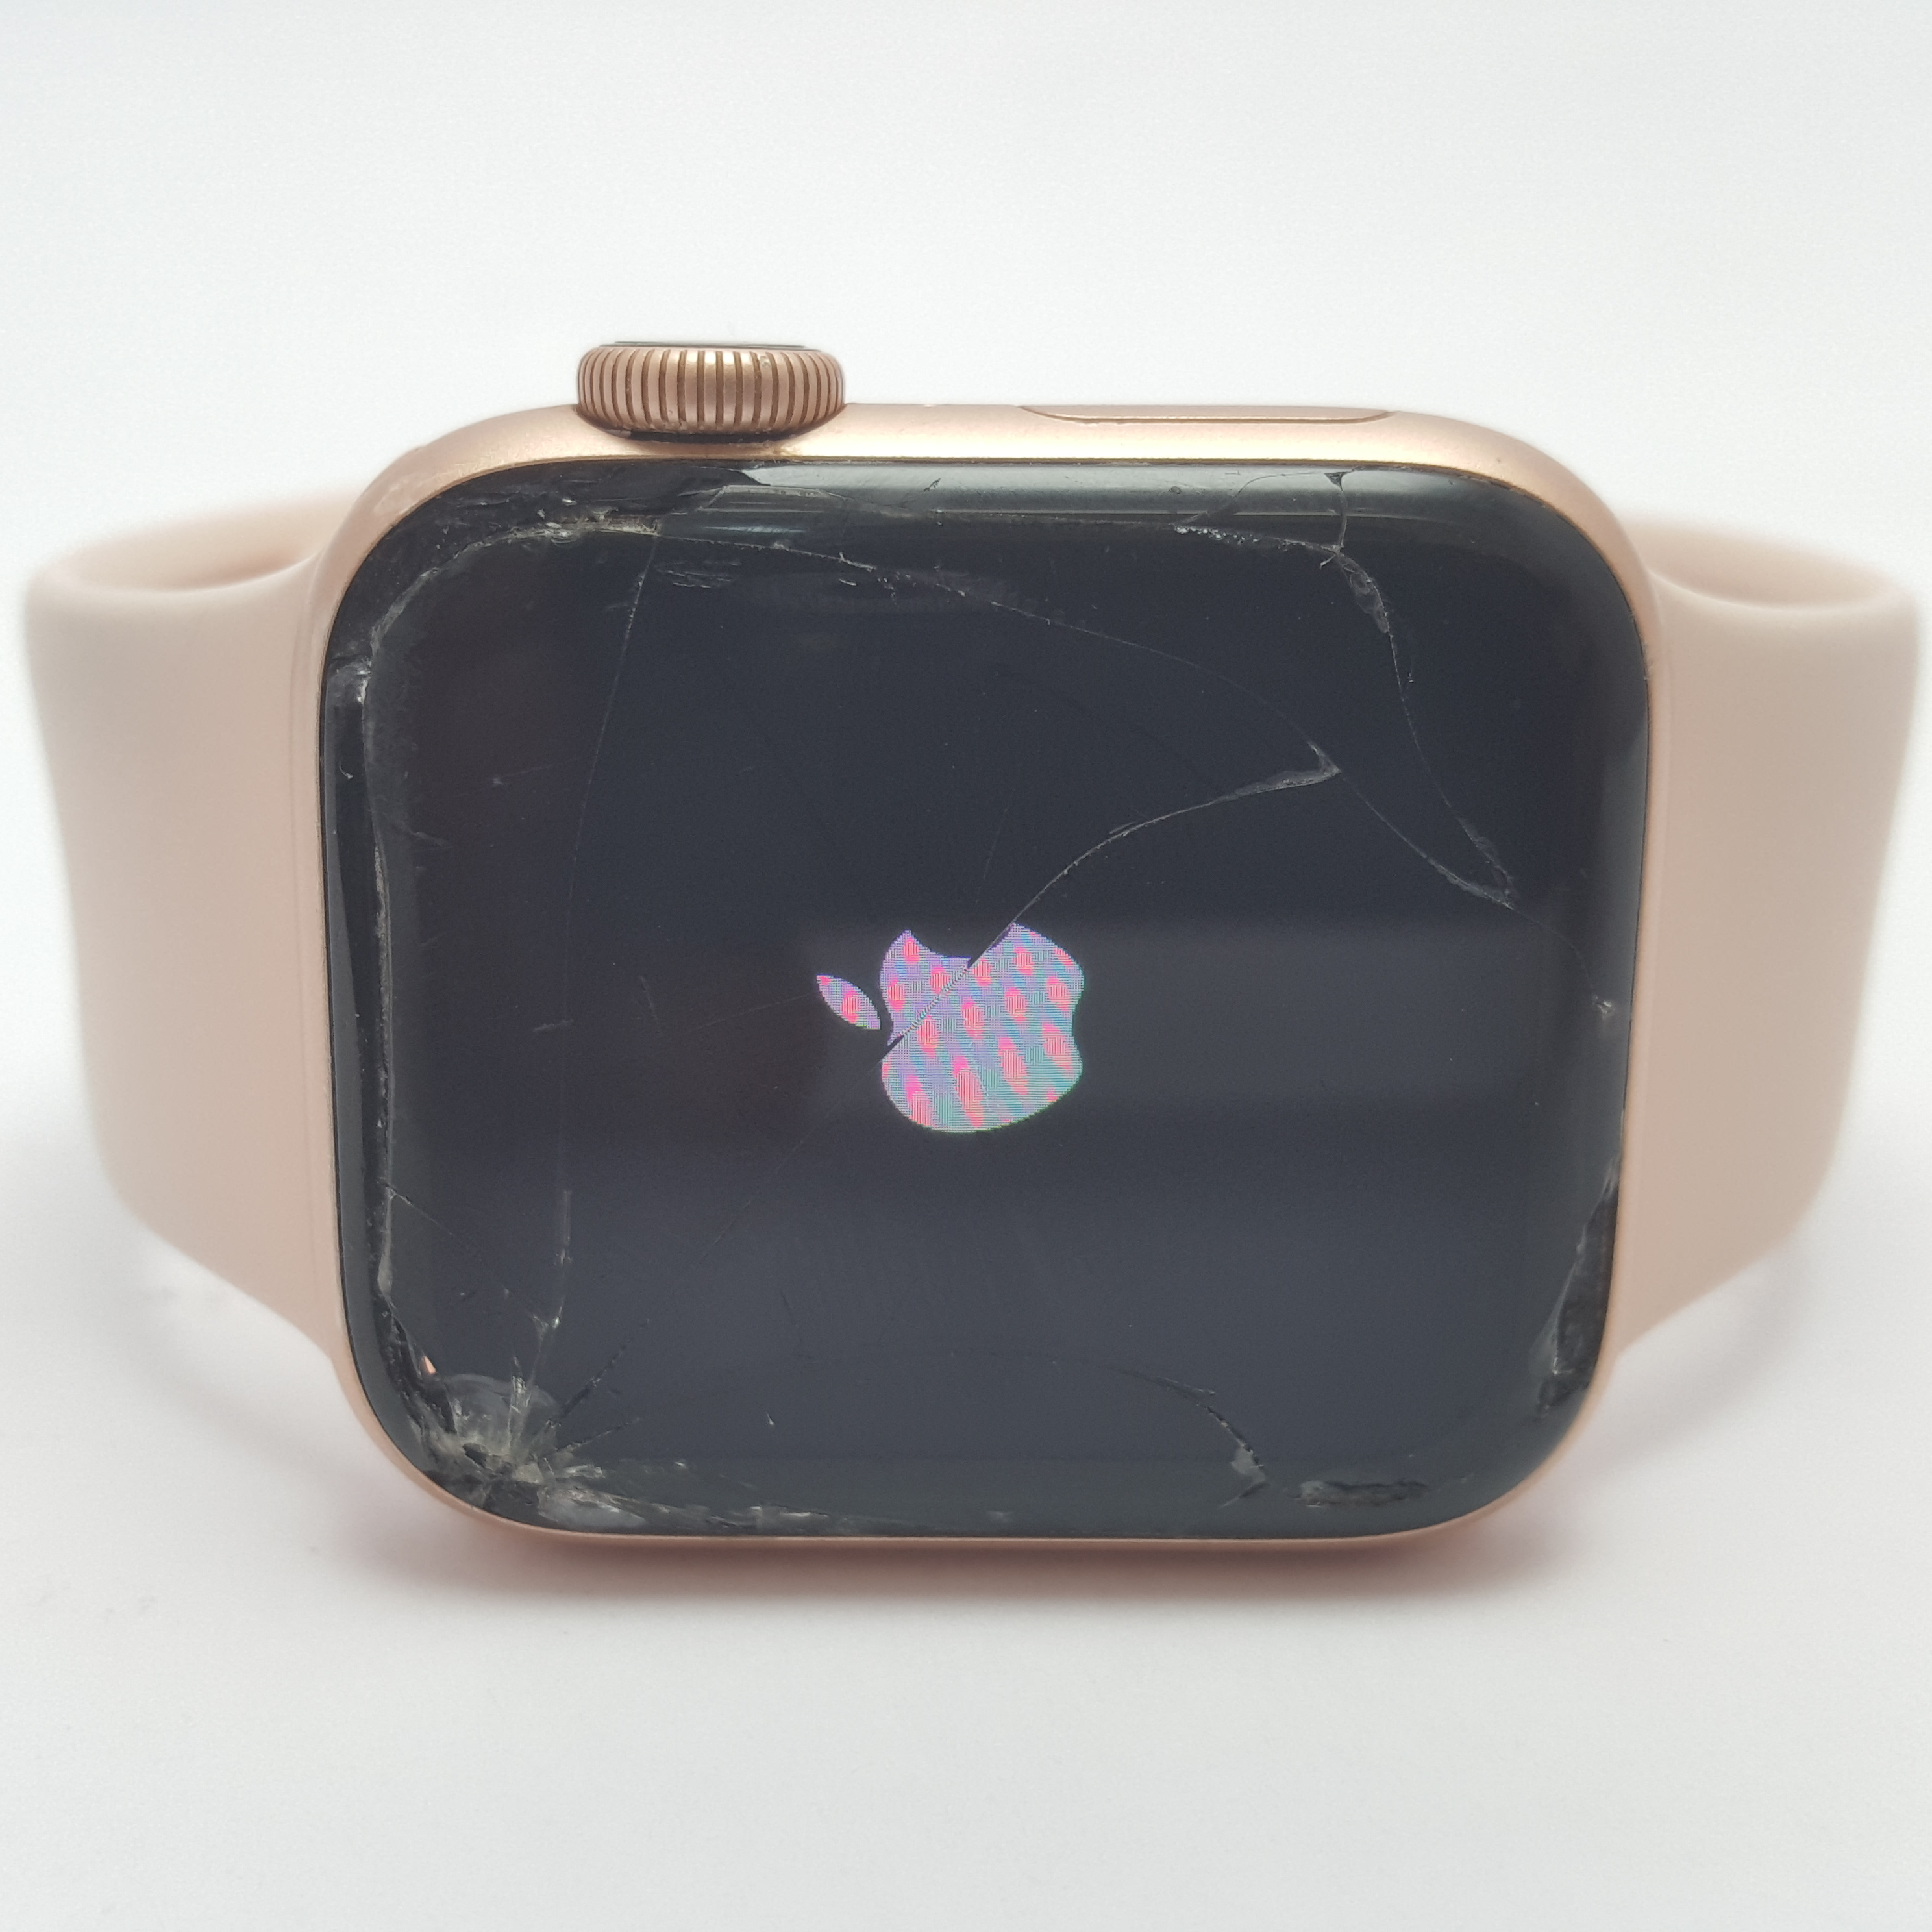 Apple Watch Series 4 Rose Gold 40mm – Cracked Screen – Touch Works!